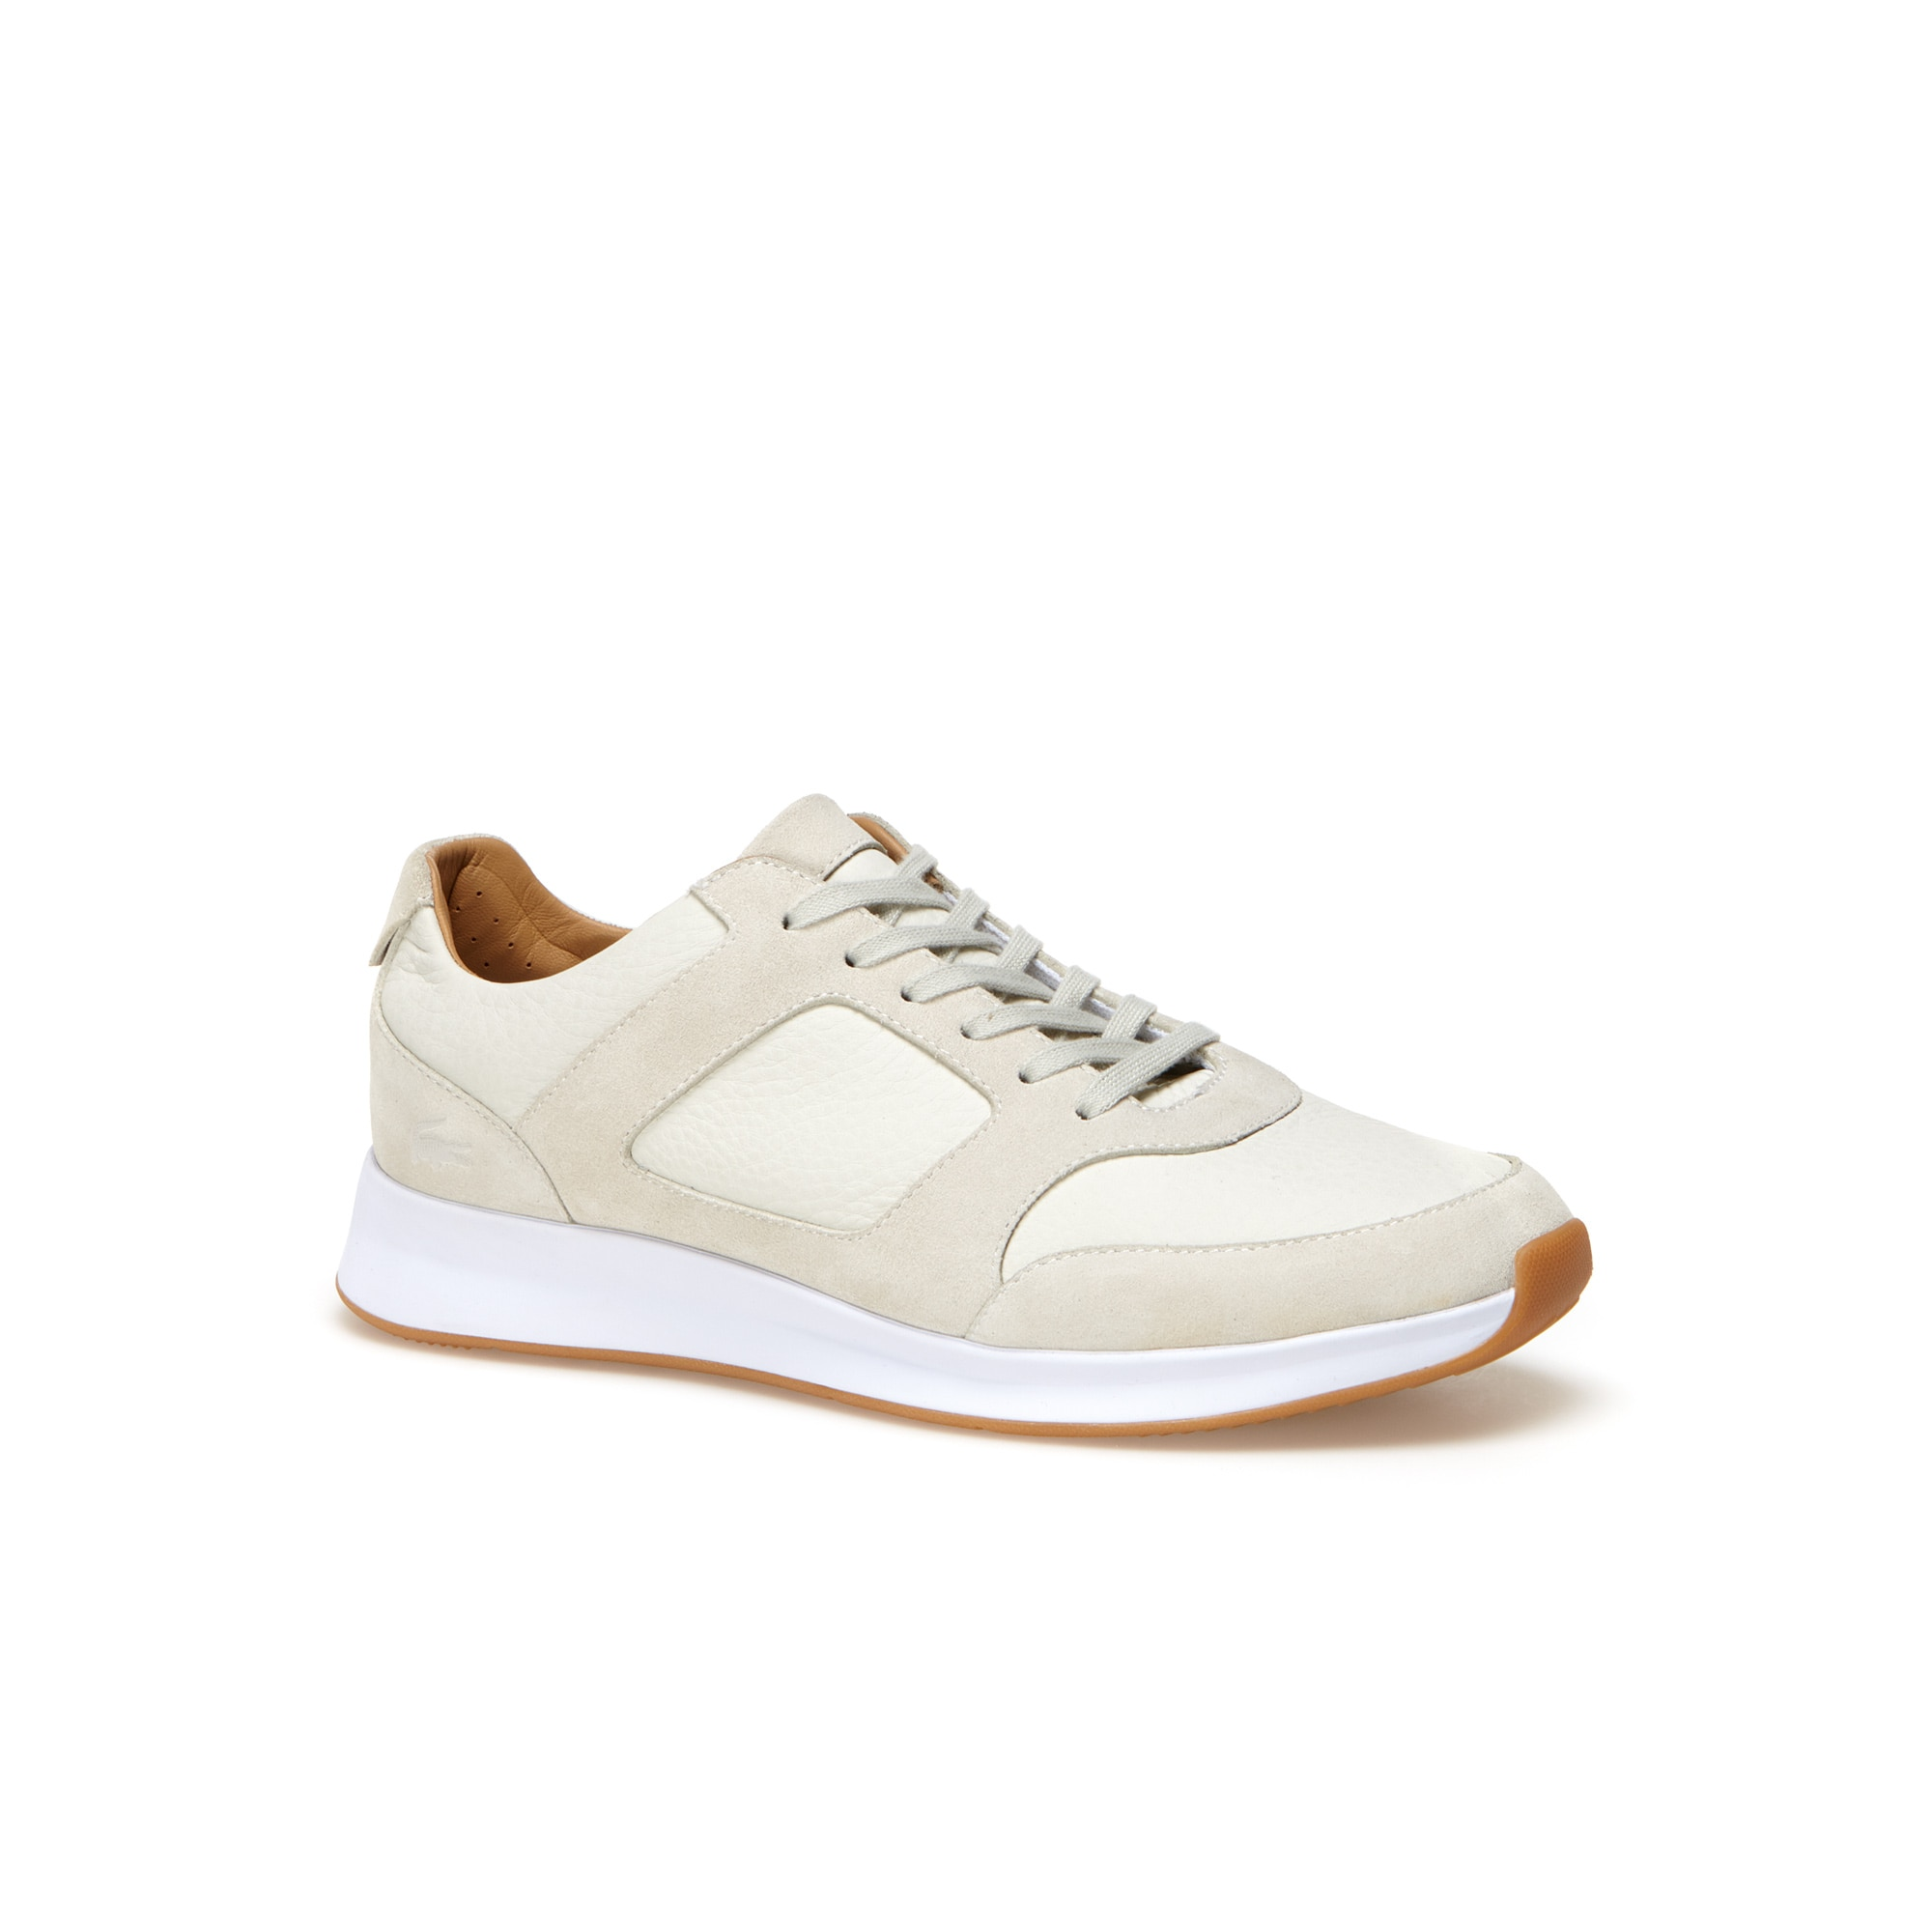 Men's Joggeur Leather and Suedette Sneakers